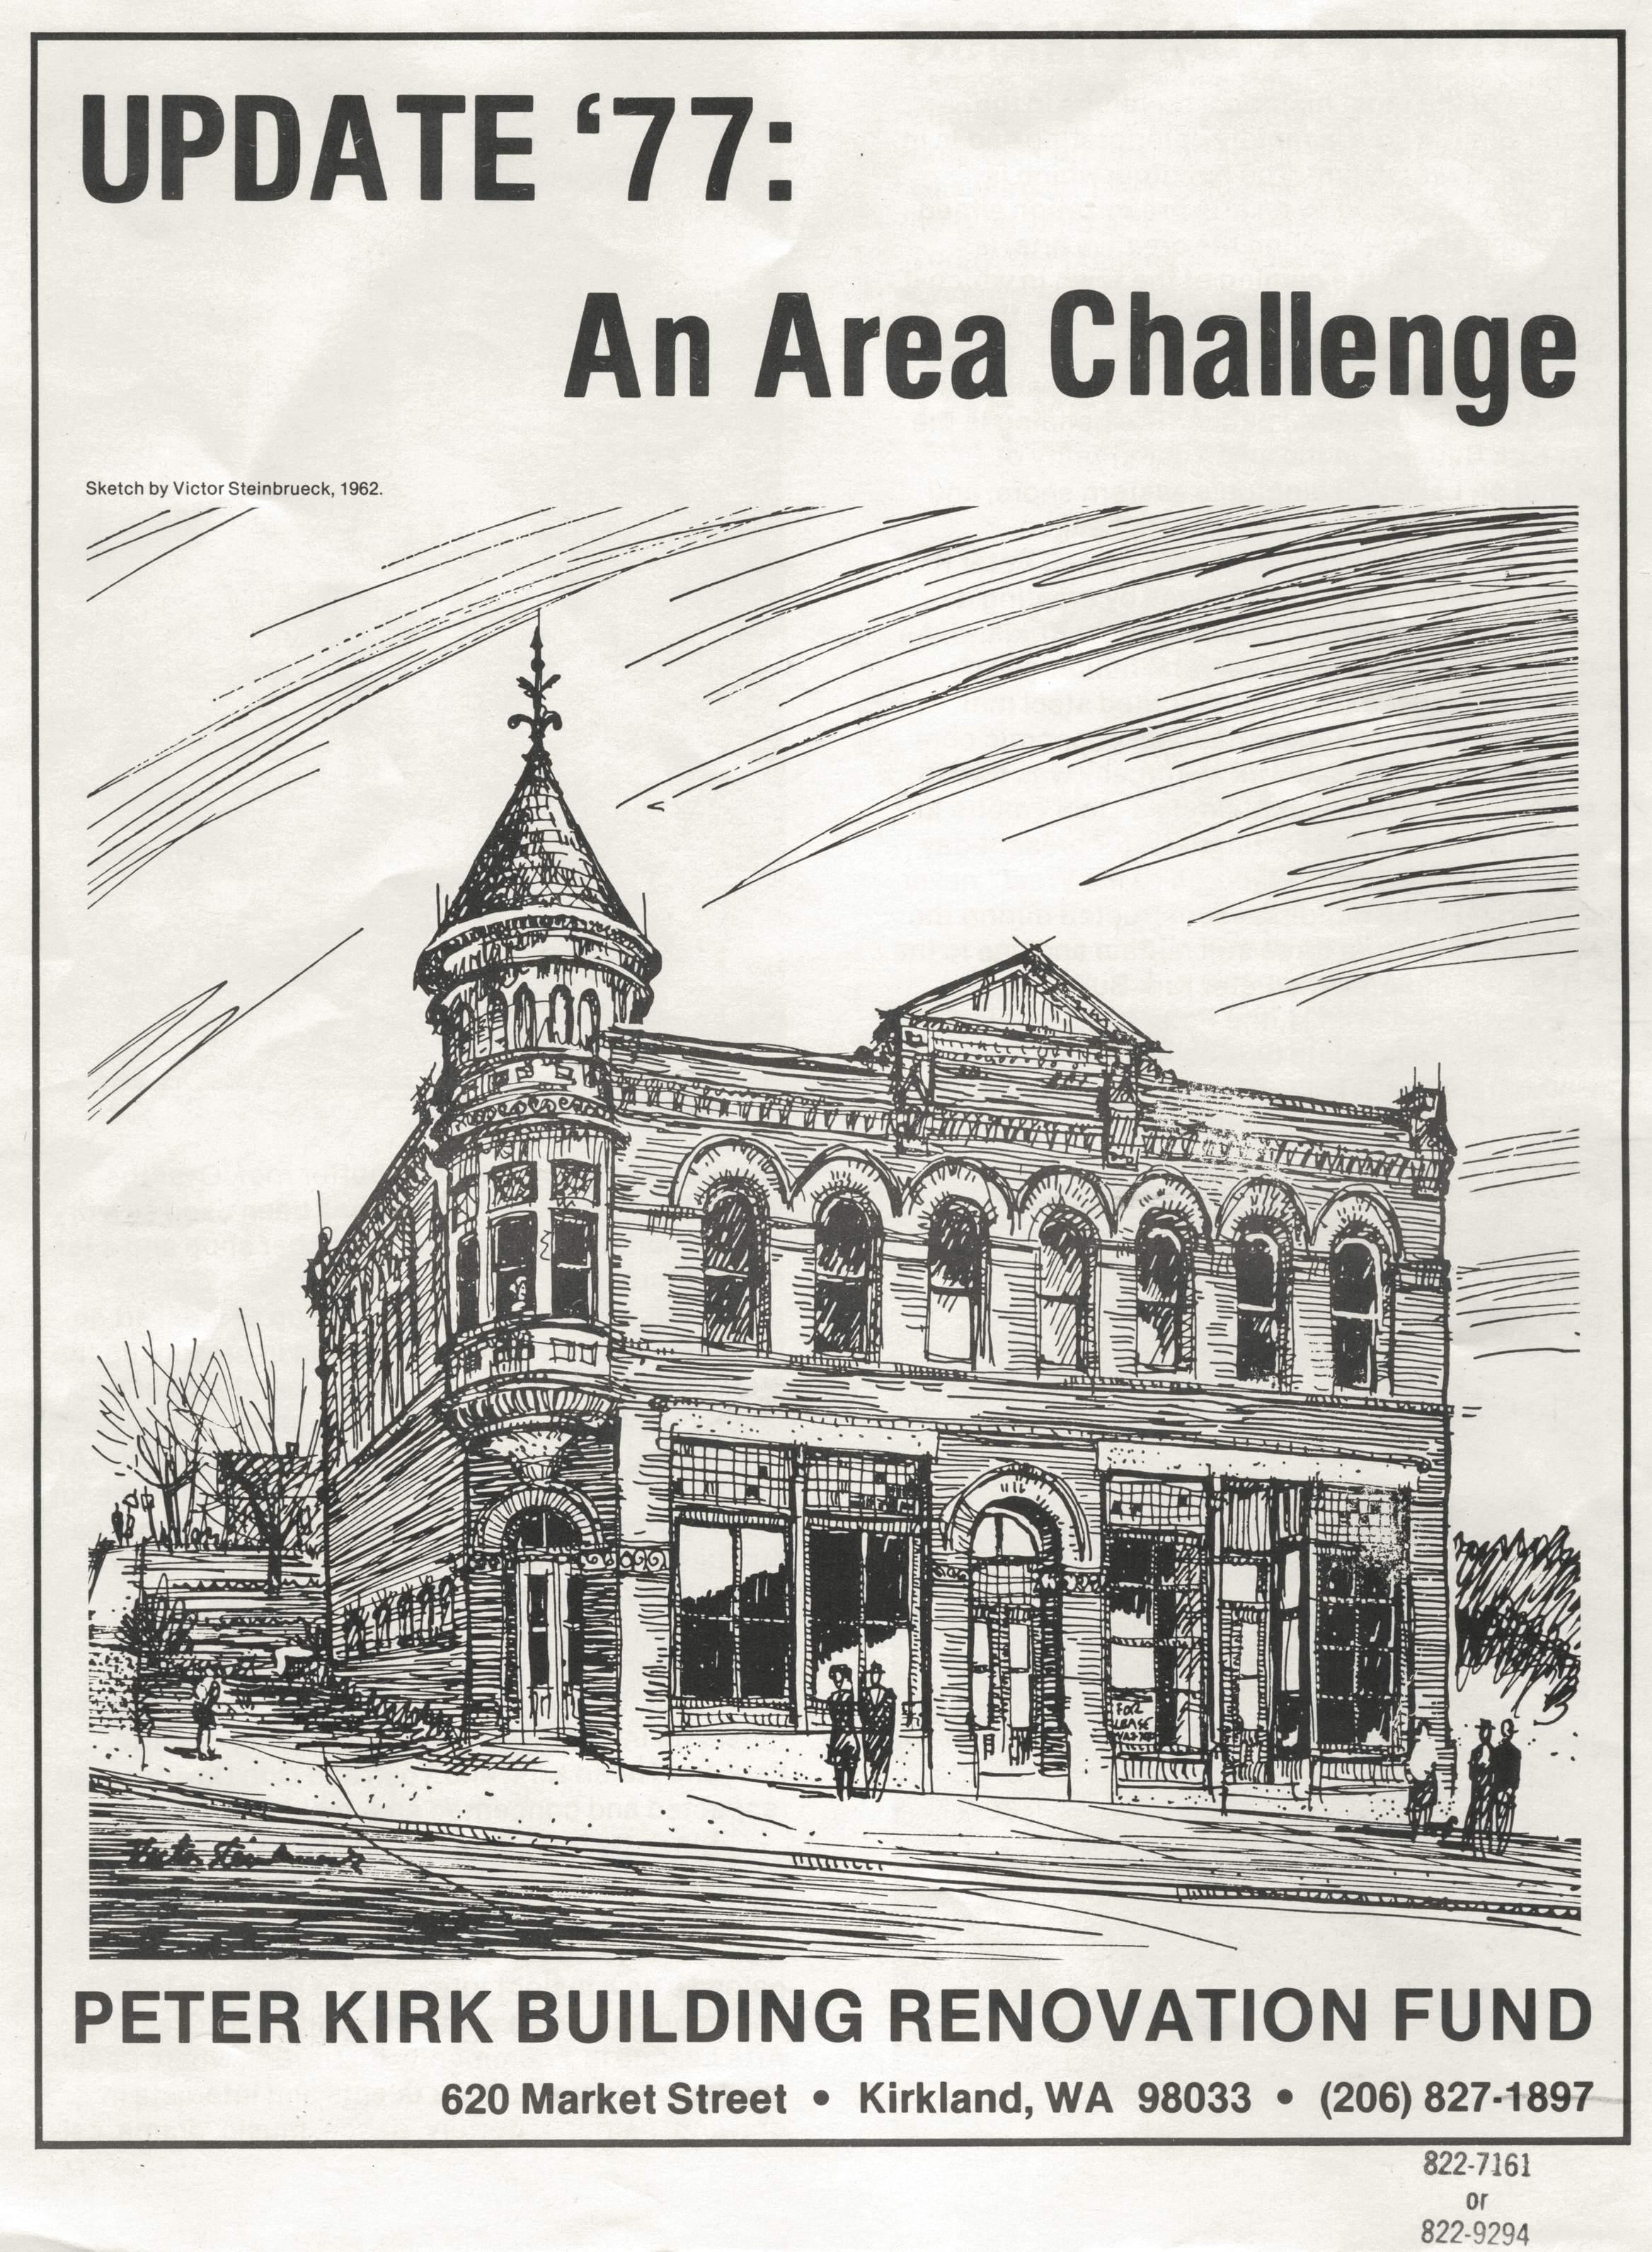 1977 Fundraising flyer for Peter Kirk Building renovation with 1962 sketch by Victor Steinbrueck